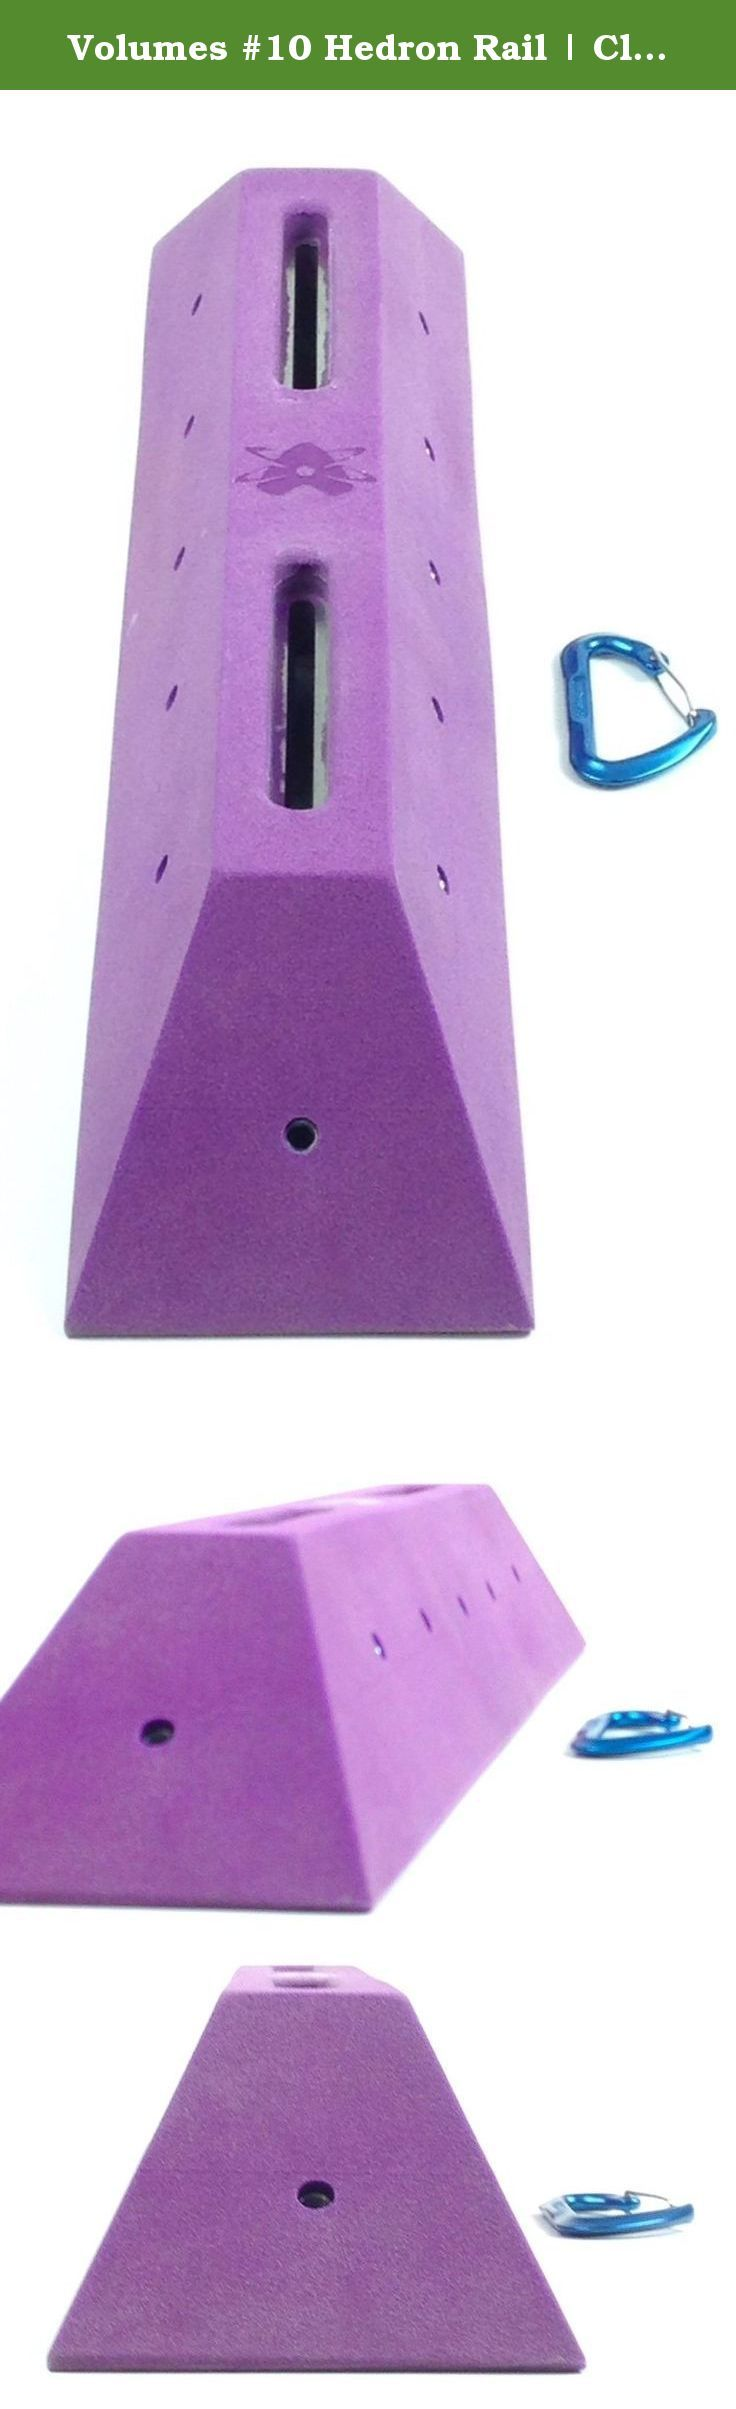 "Volumes #10 Hedron Rail | Climbing Holds | Bright Purple. Volume #10 Base Dimensions : 28"" long x 6"" wide base. 2 1/4"" on the top plate where the logo is. Stands out from the wall: 5"" T-nuts installed: 12 round base brad hole t-nuts. Attachment method : Two 3/8-16 Allan head bolts via our embedded stainless steel double slider washers."